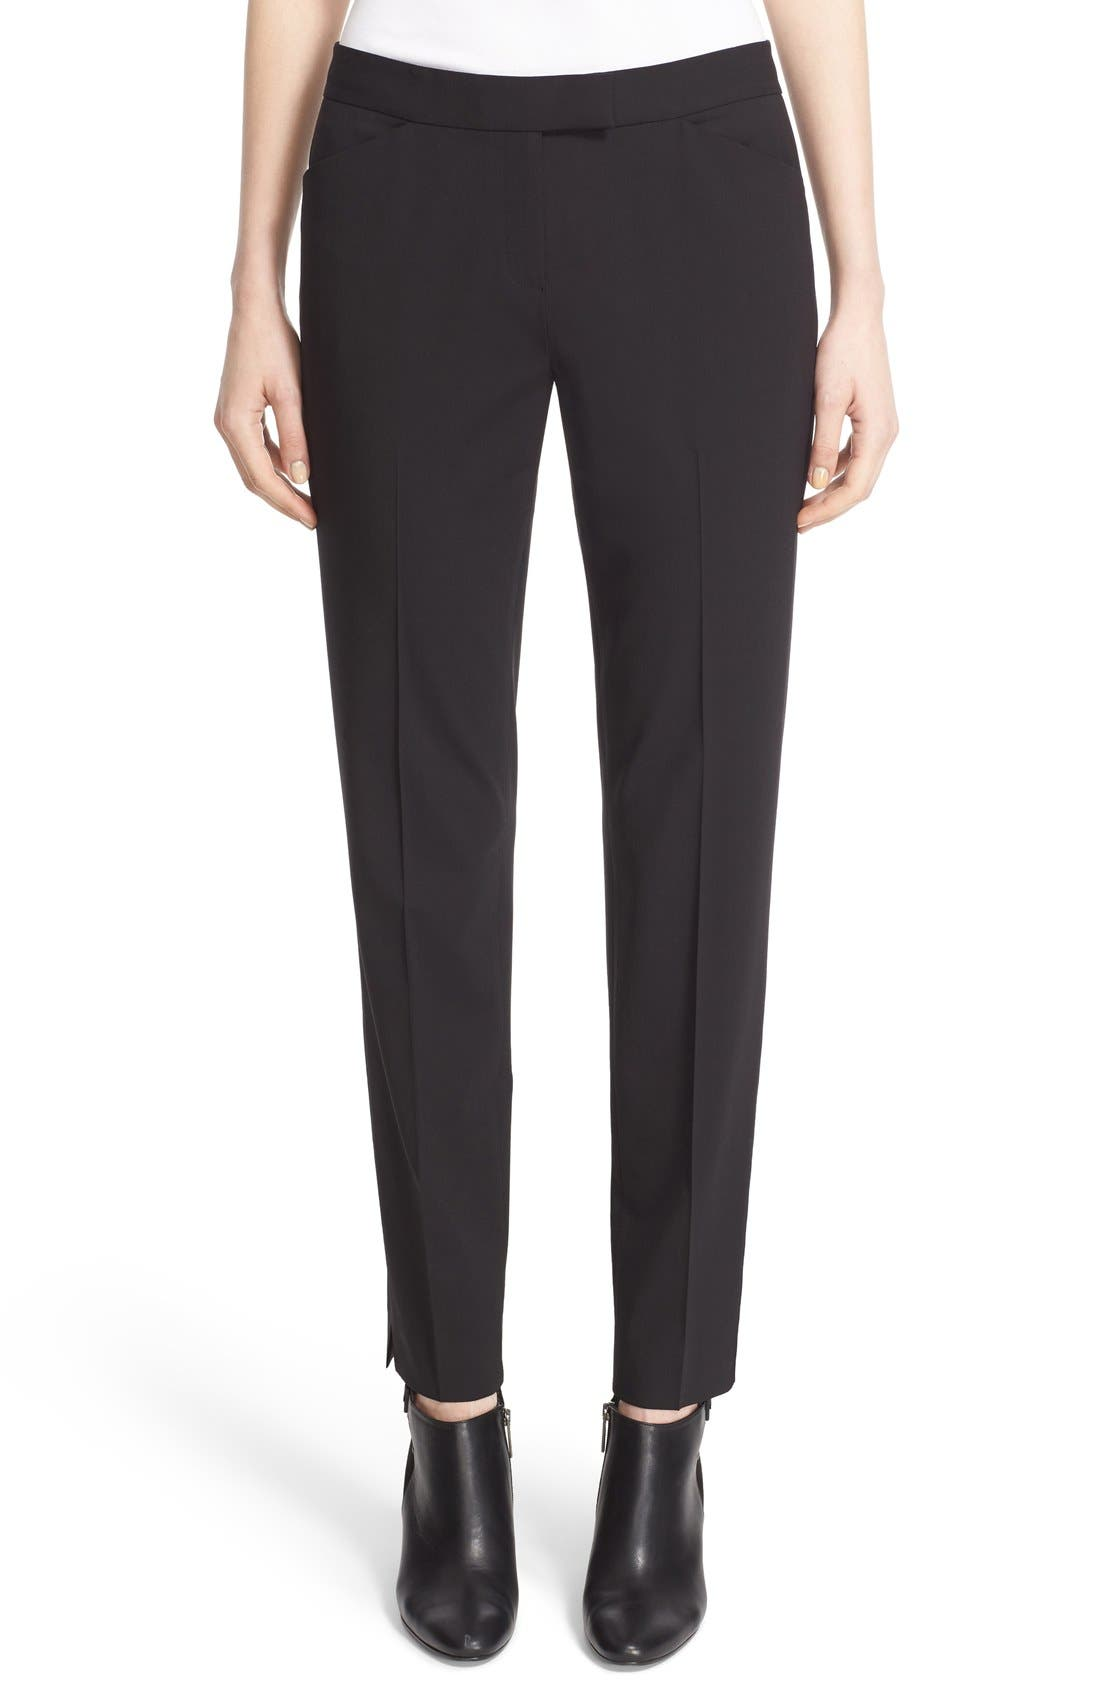 LAFAYETTE 148 NEW YORK 'Irving' Stretch Wool Pants